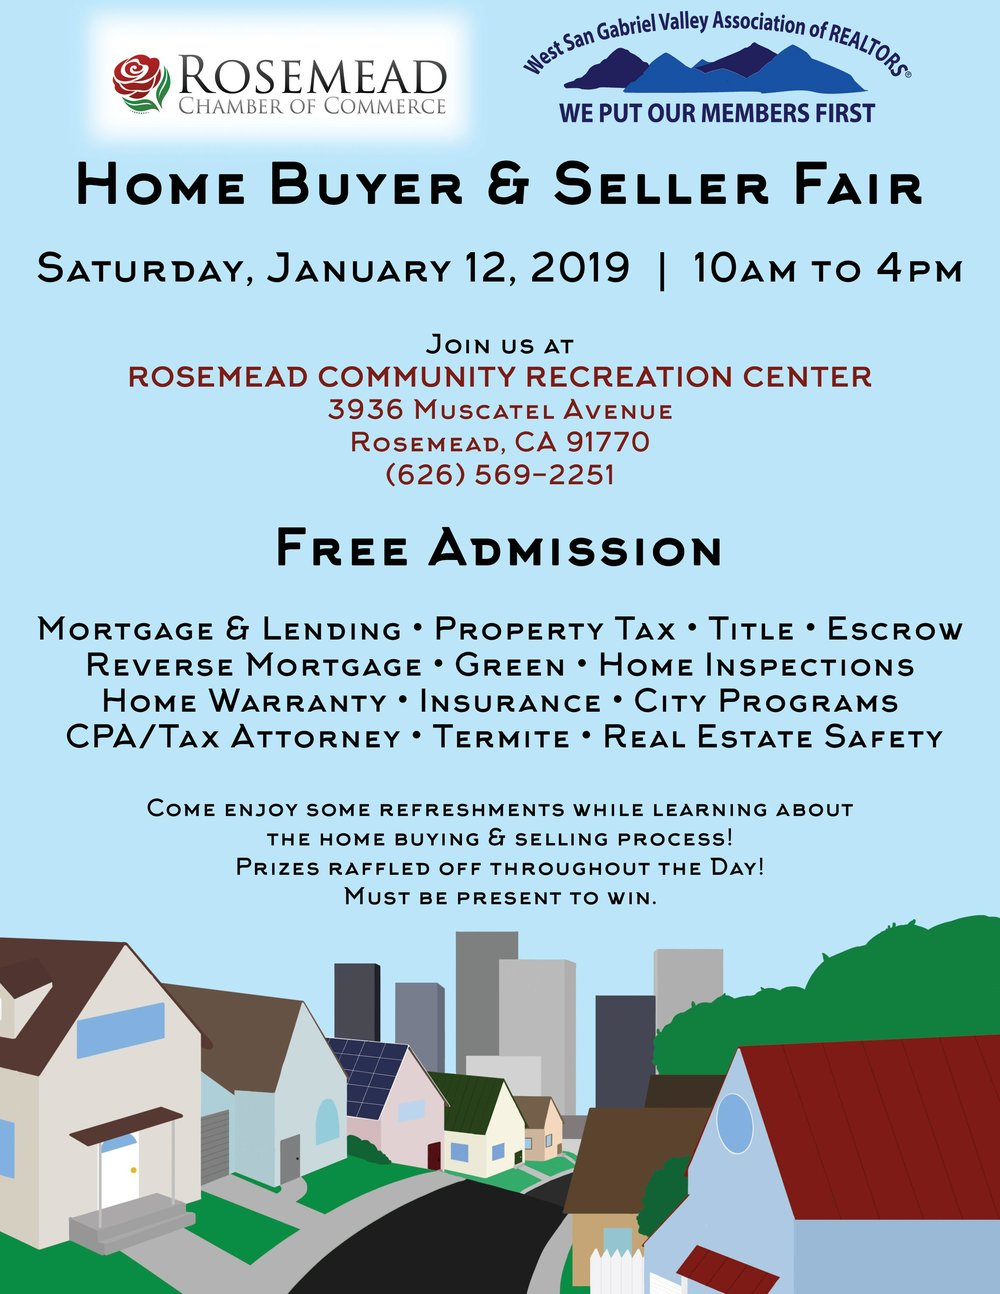 home buyer & seller fair - January 12th, 2019